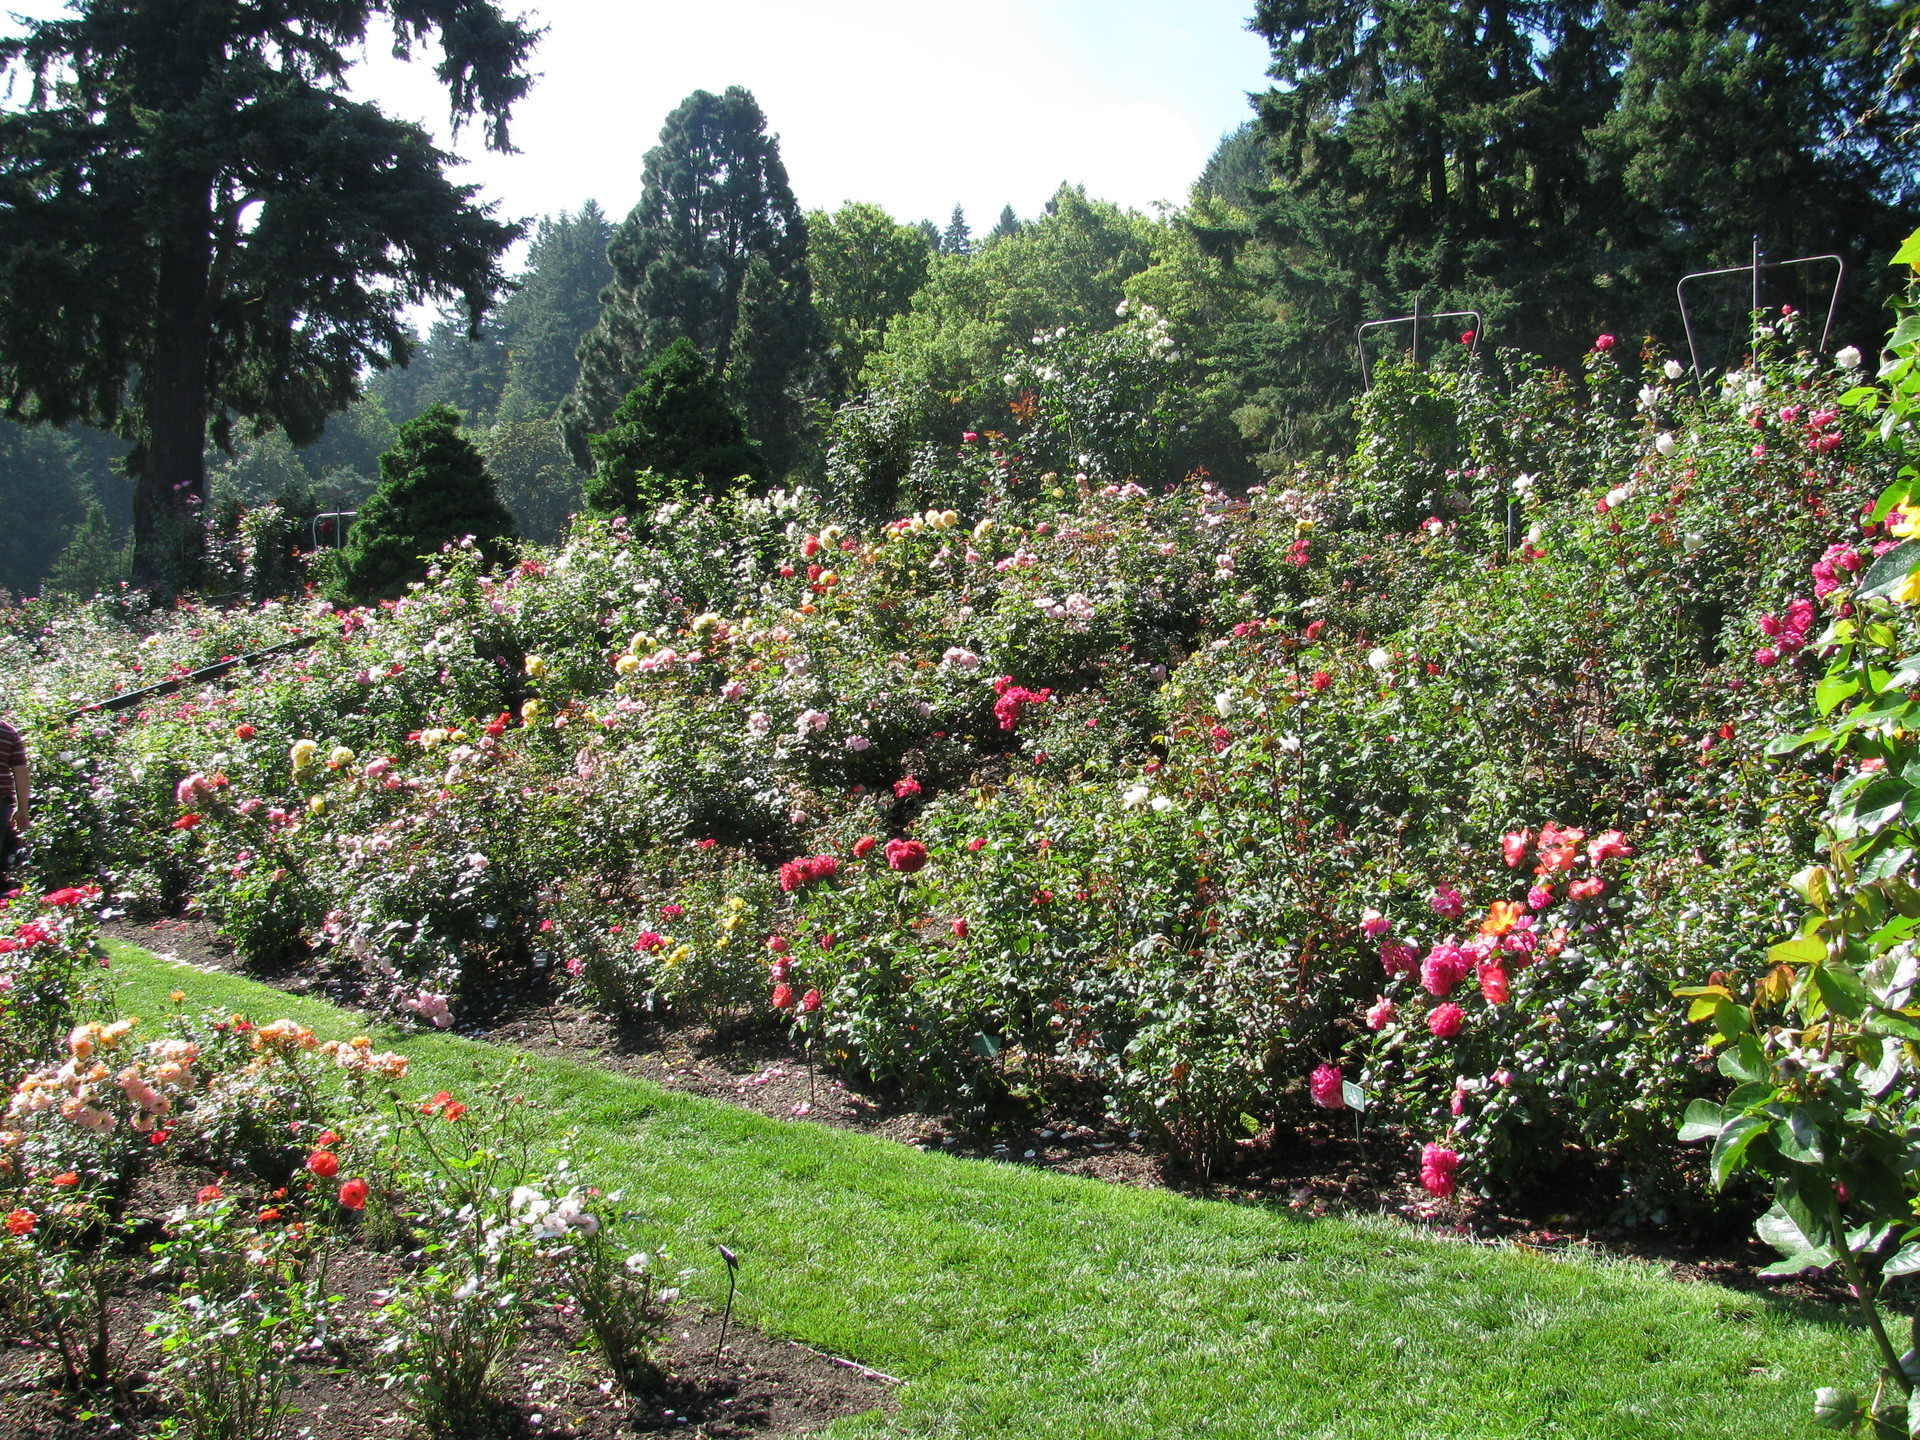 Portland International Rose Test Garden. View inside the garden